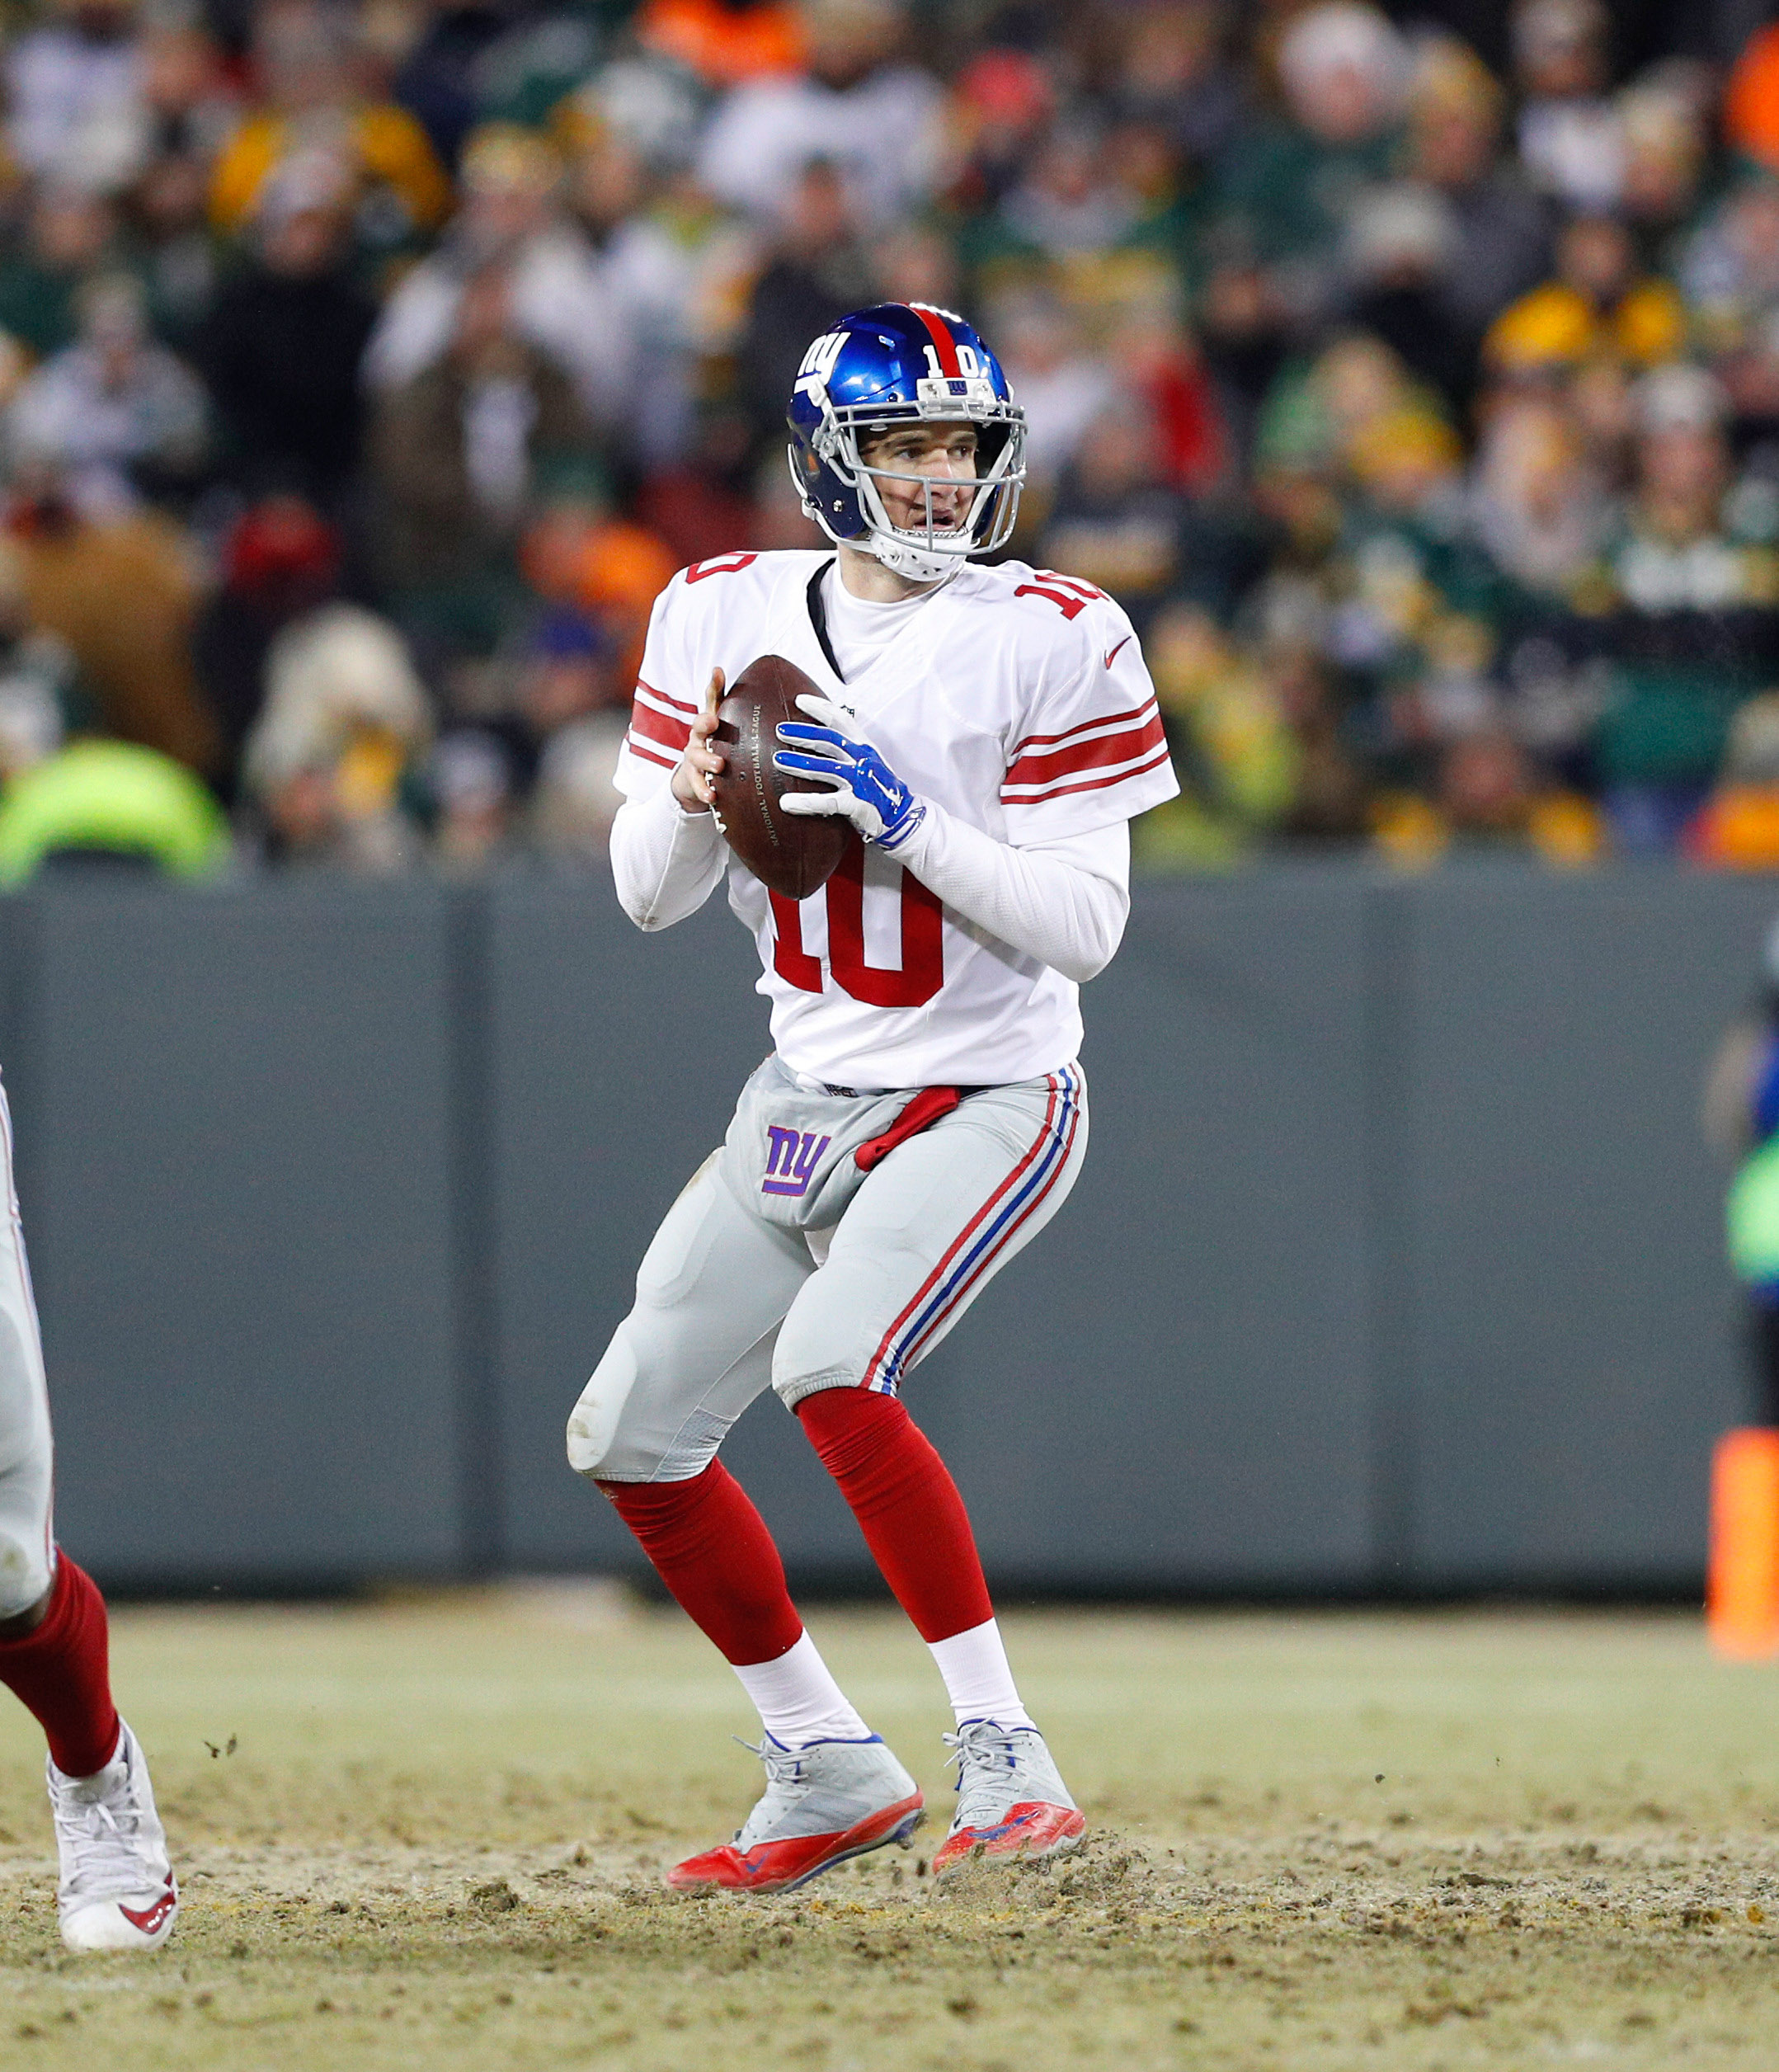 9823730-nfl-nfc-wild-card-new-york-giants-at-green-bay-packers1